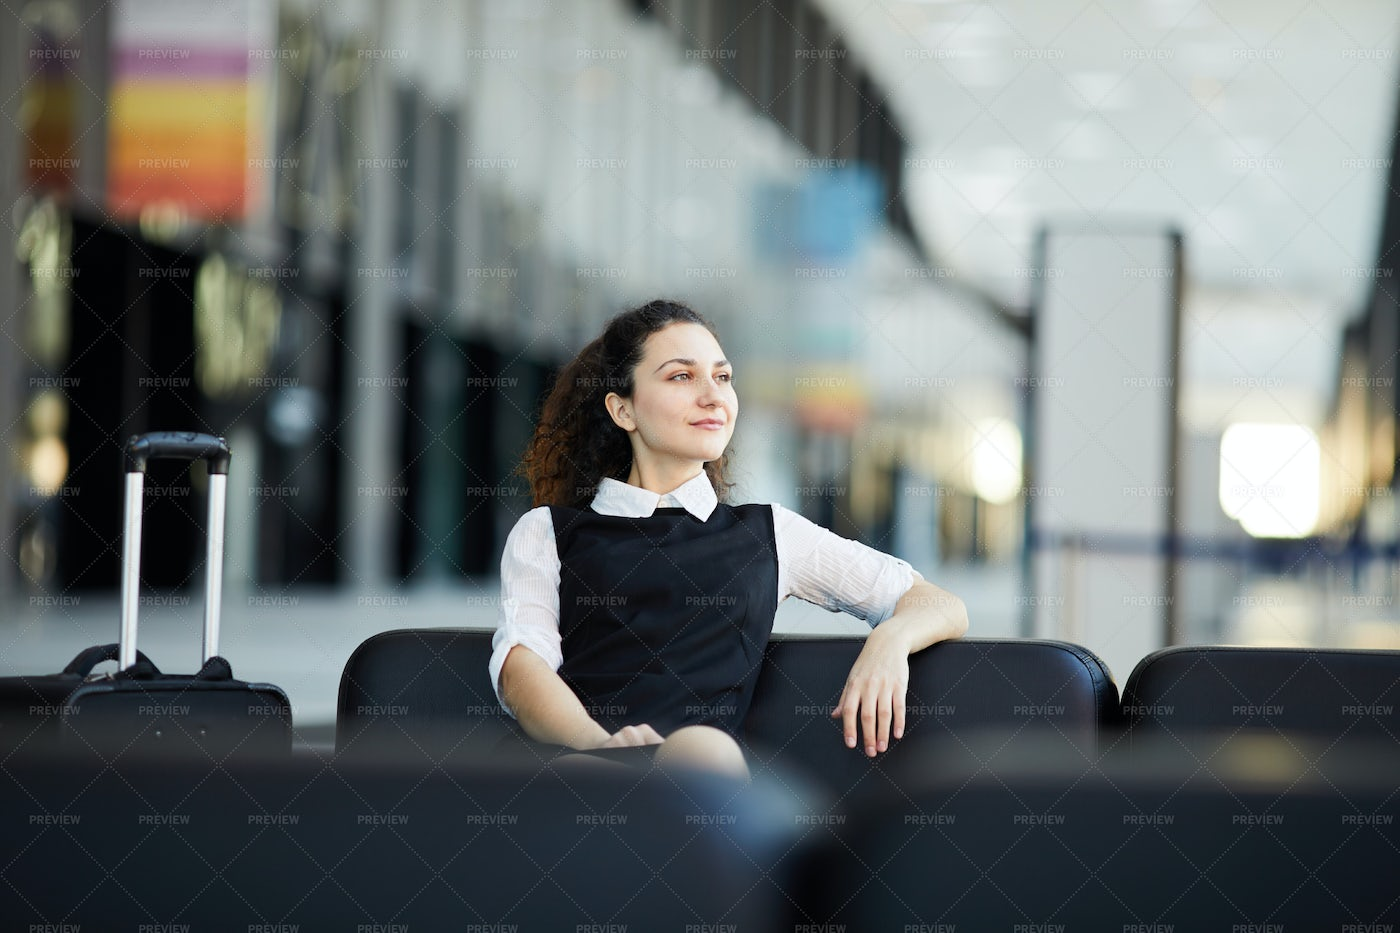 Smiling Woman Waiting In Airport: Stock Photos